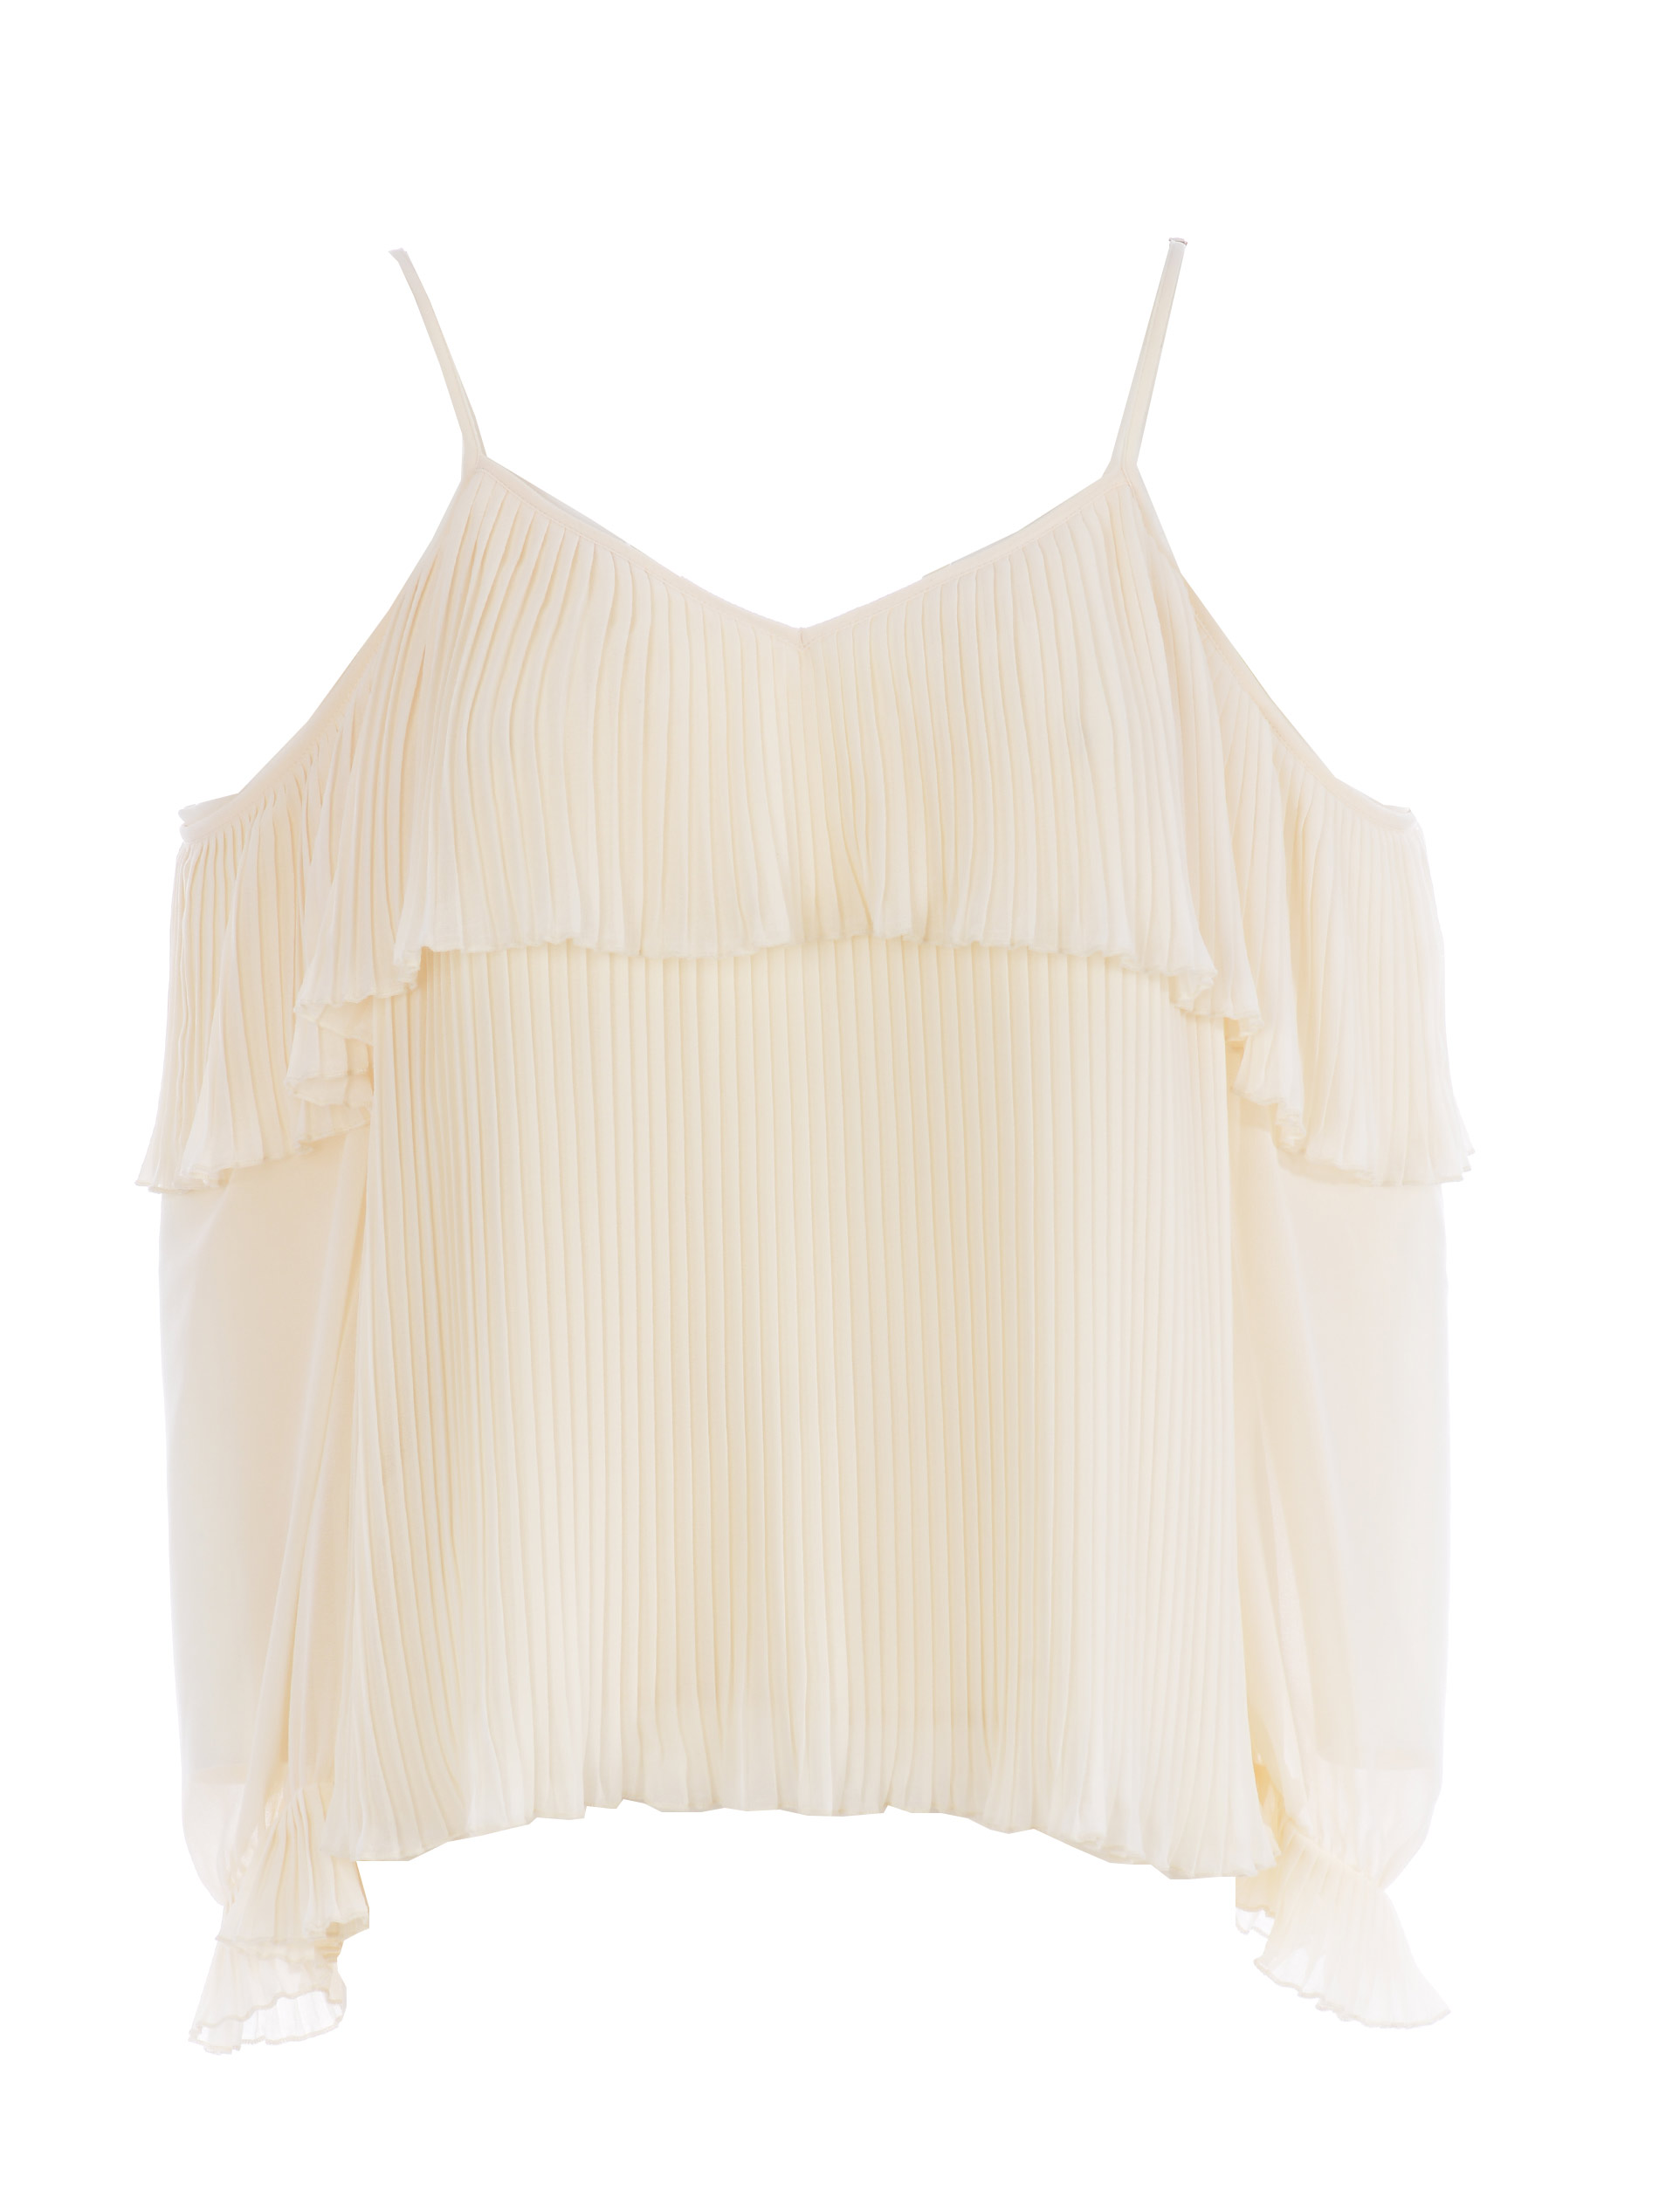 Twinset blouse in ivory pleated georgette